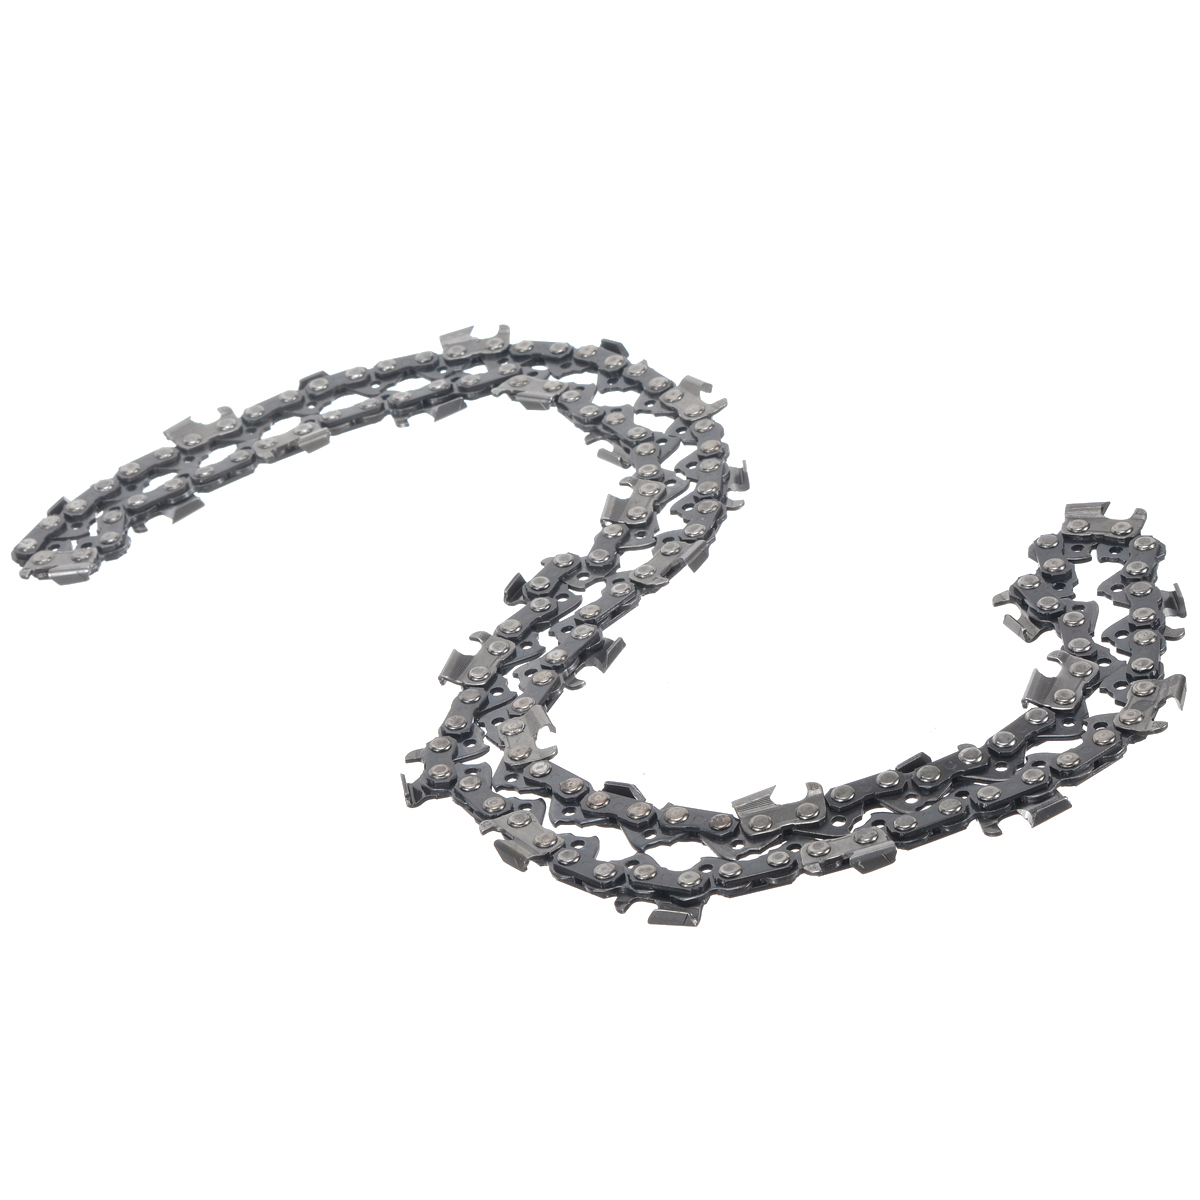 Aliexpress Buy 16 Chainsaw Chain 64 Section Drive